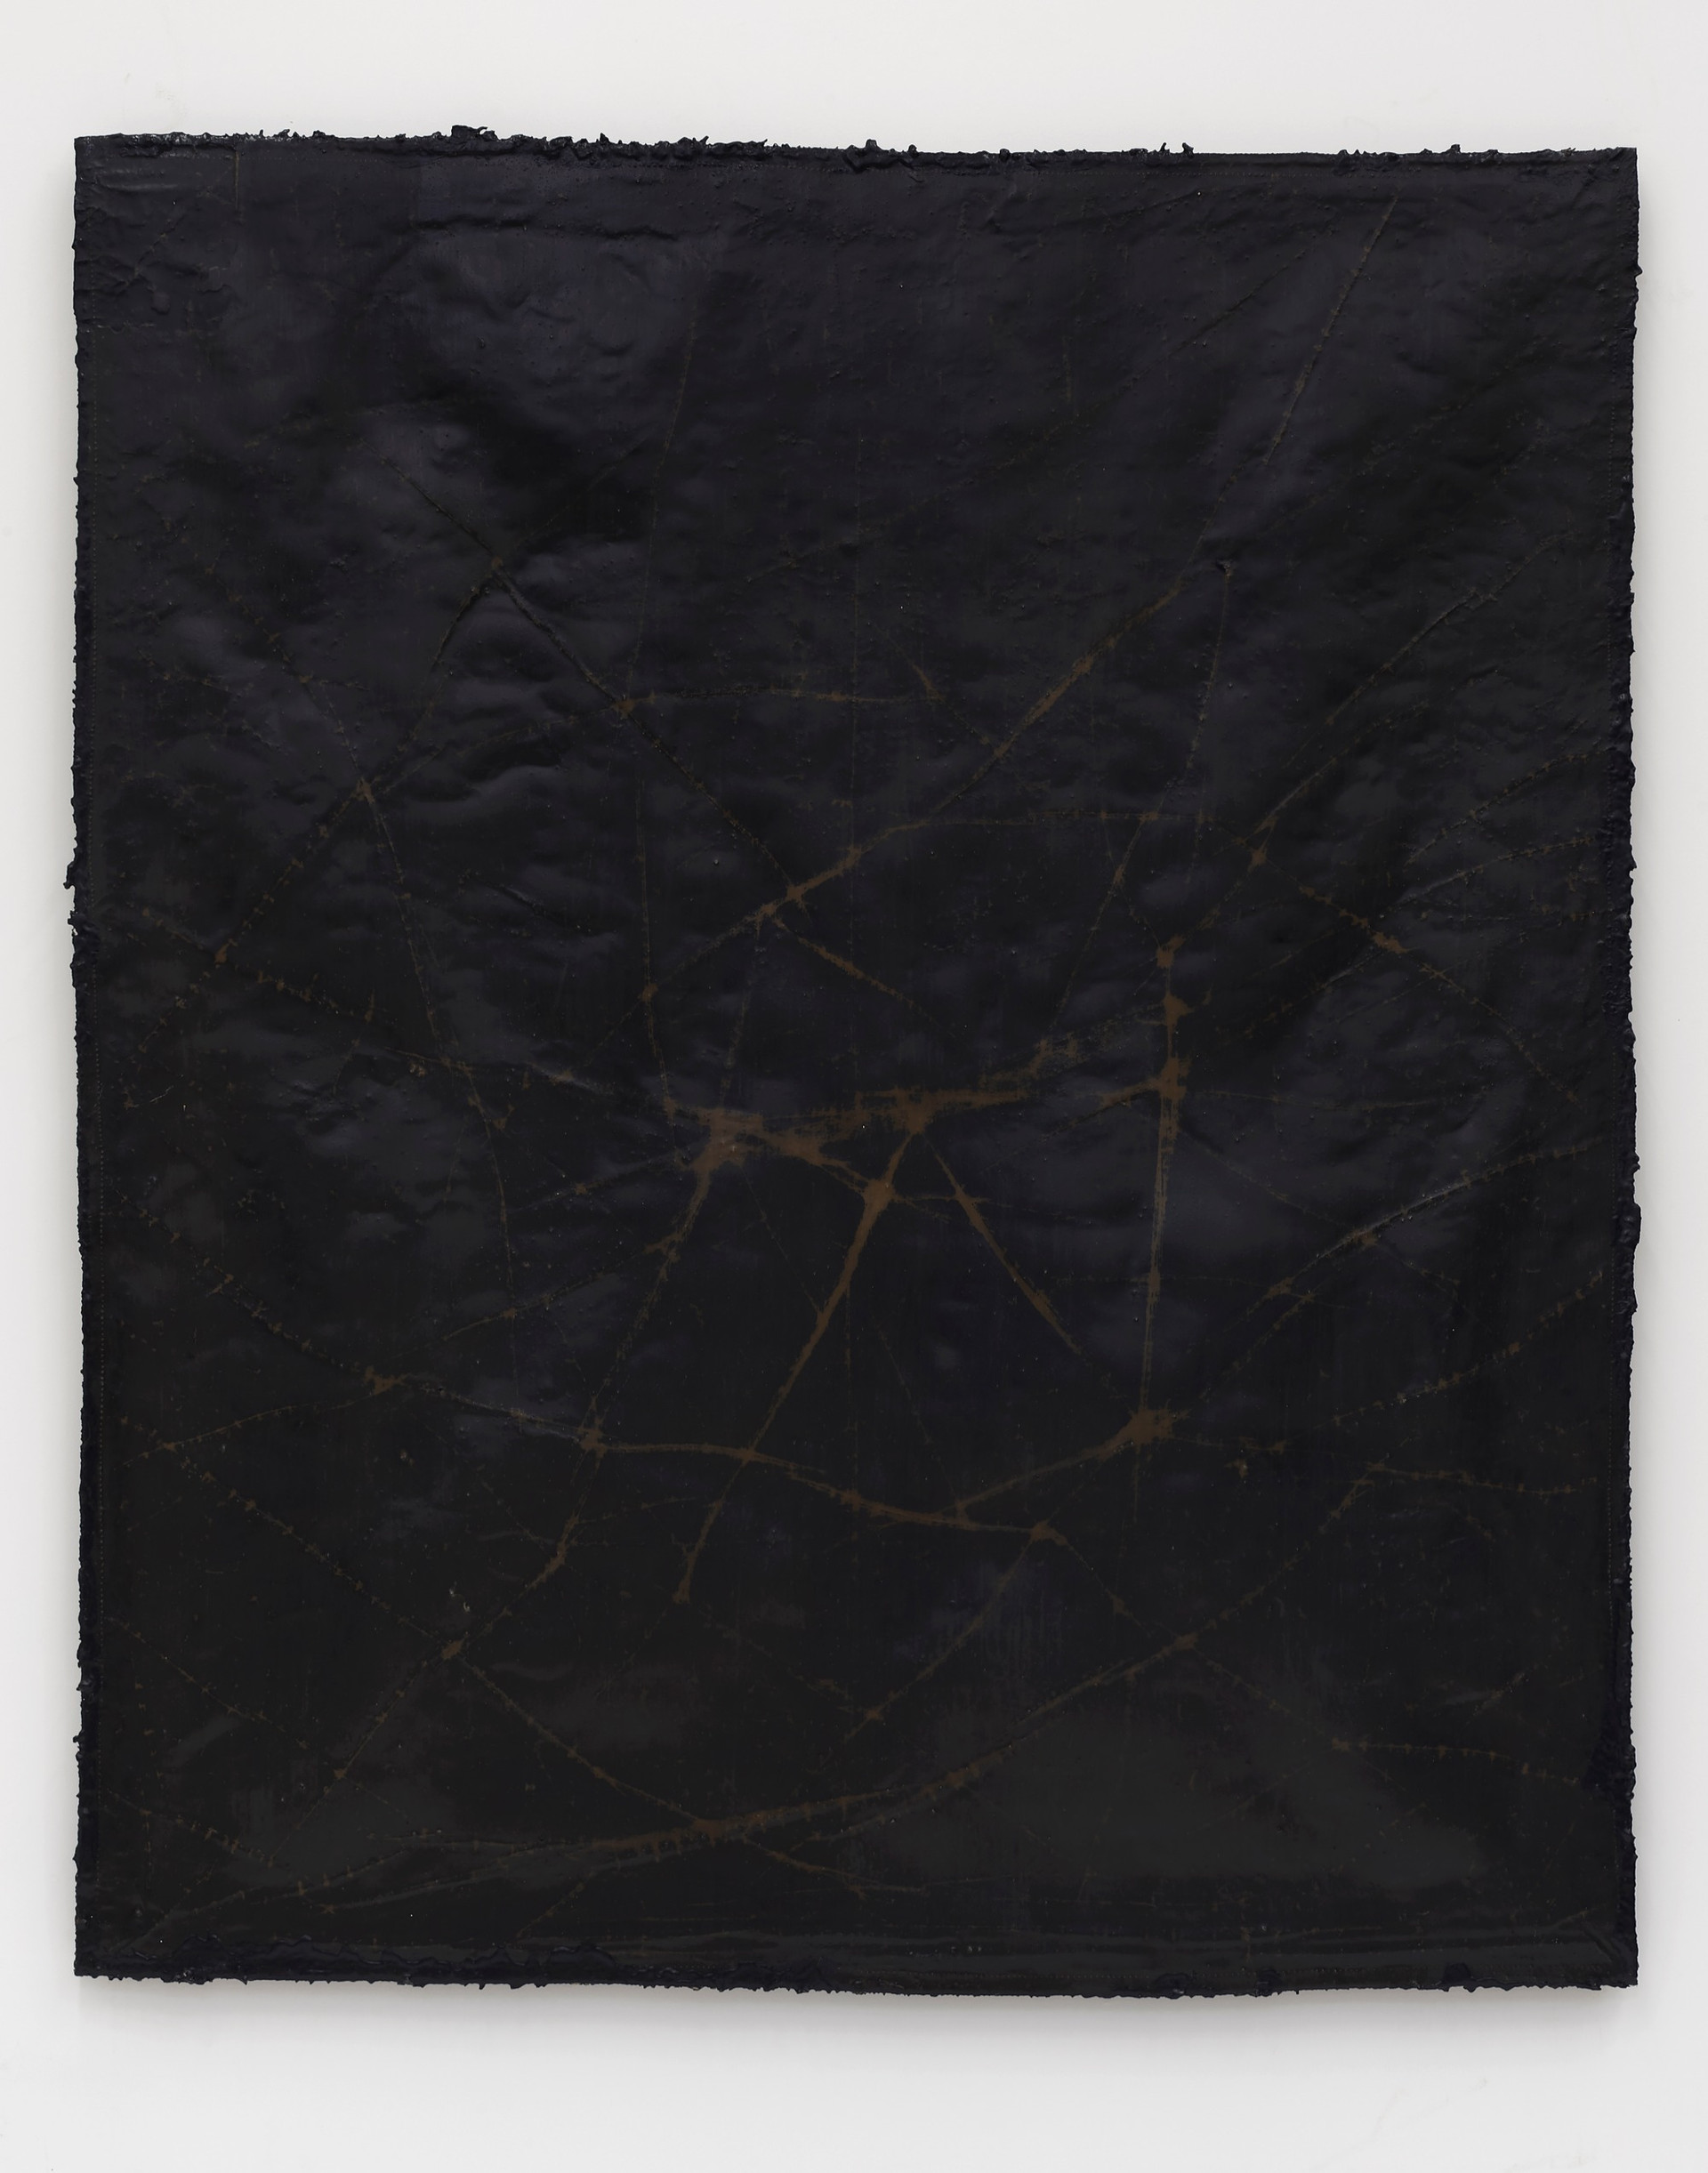 Helmut Lang  network #5, 2019 Cotton, wax, resin, and tar on canvas 62 1/2 x 53 x 1 1/2 inches